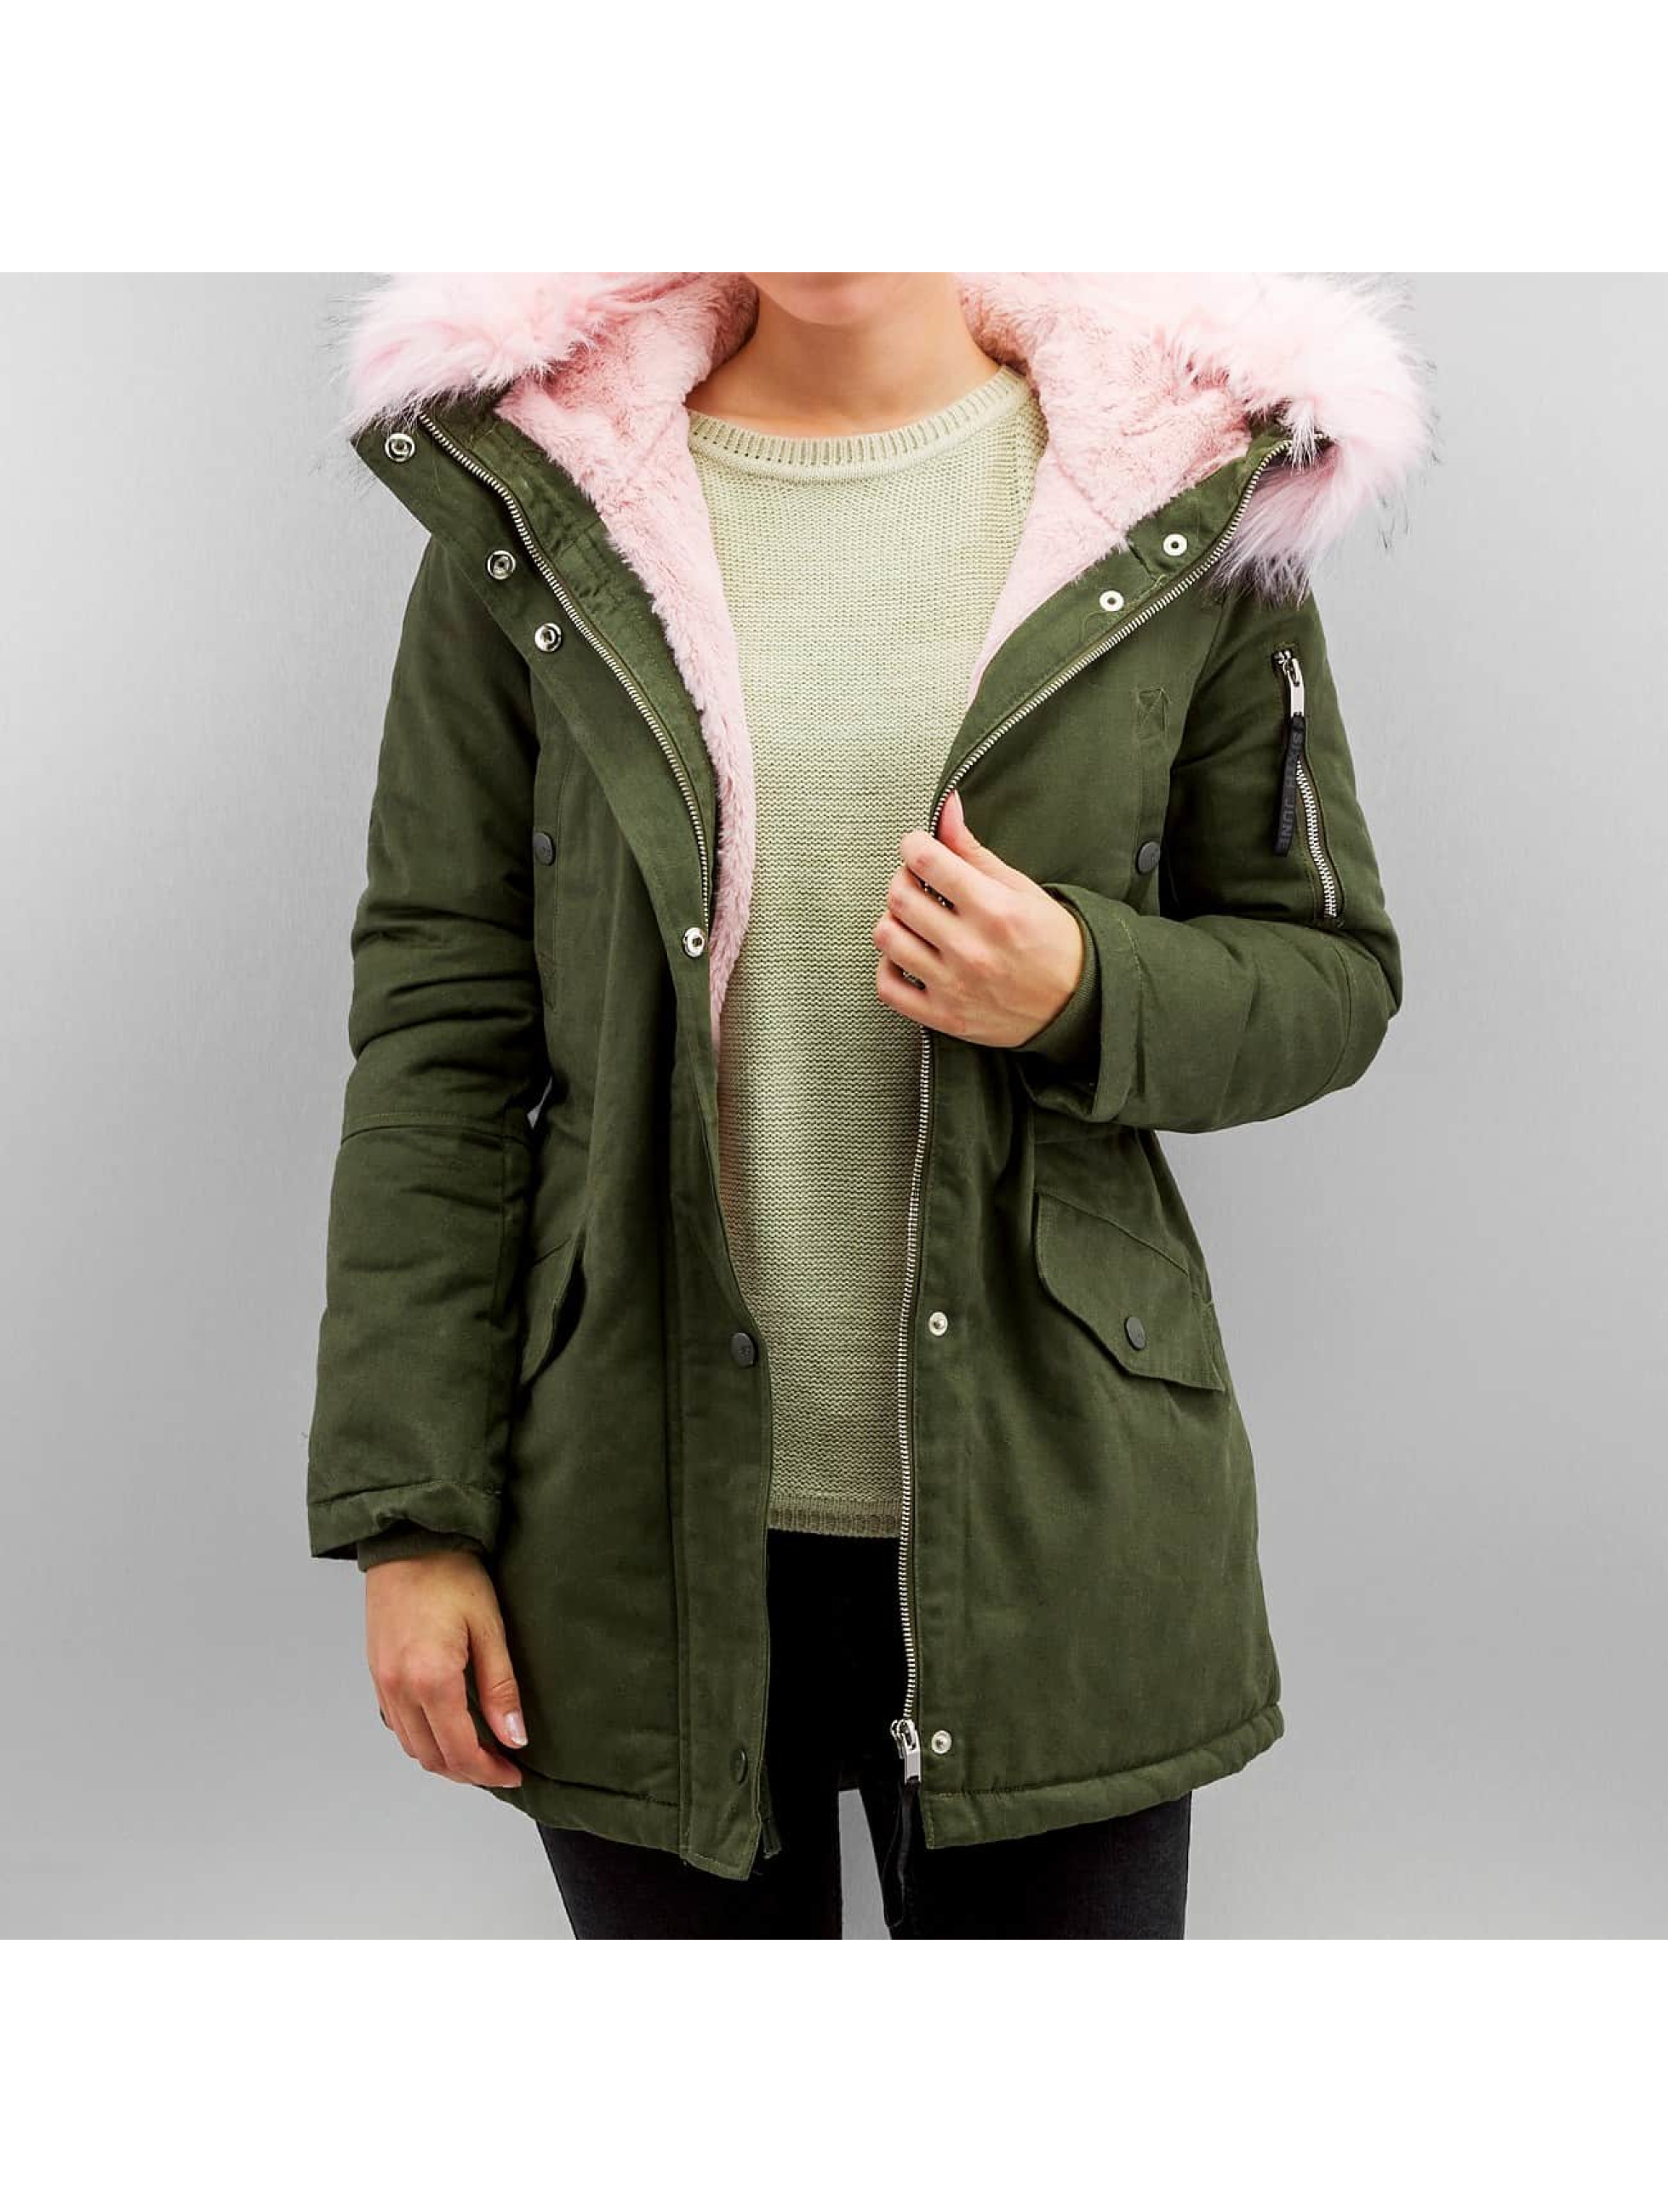 Winterjacke Fake in khaki